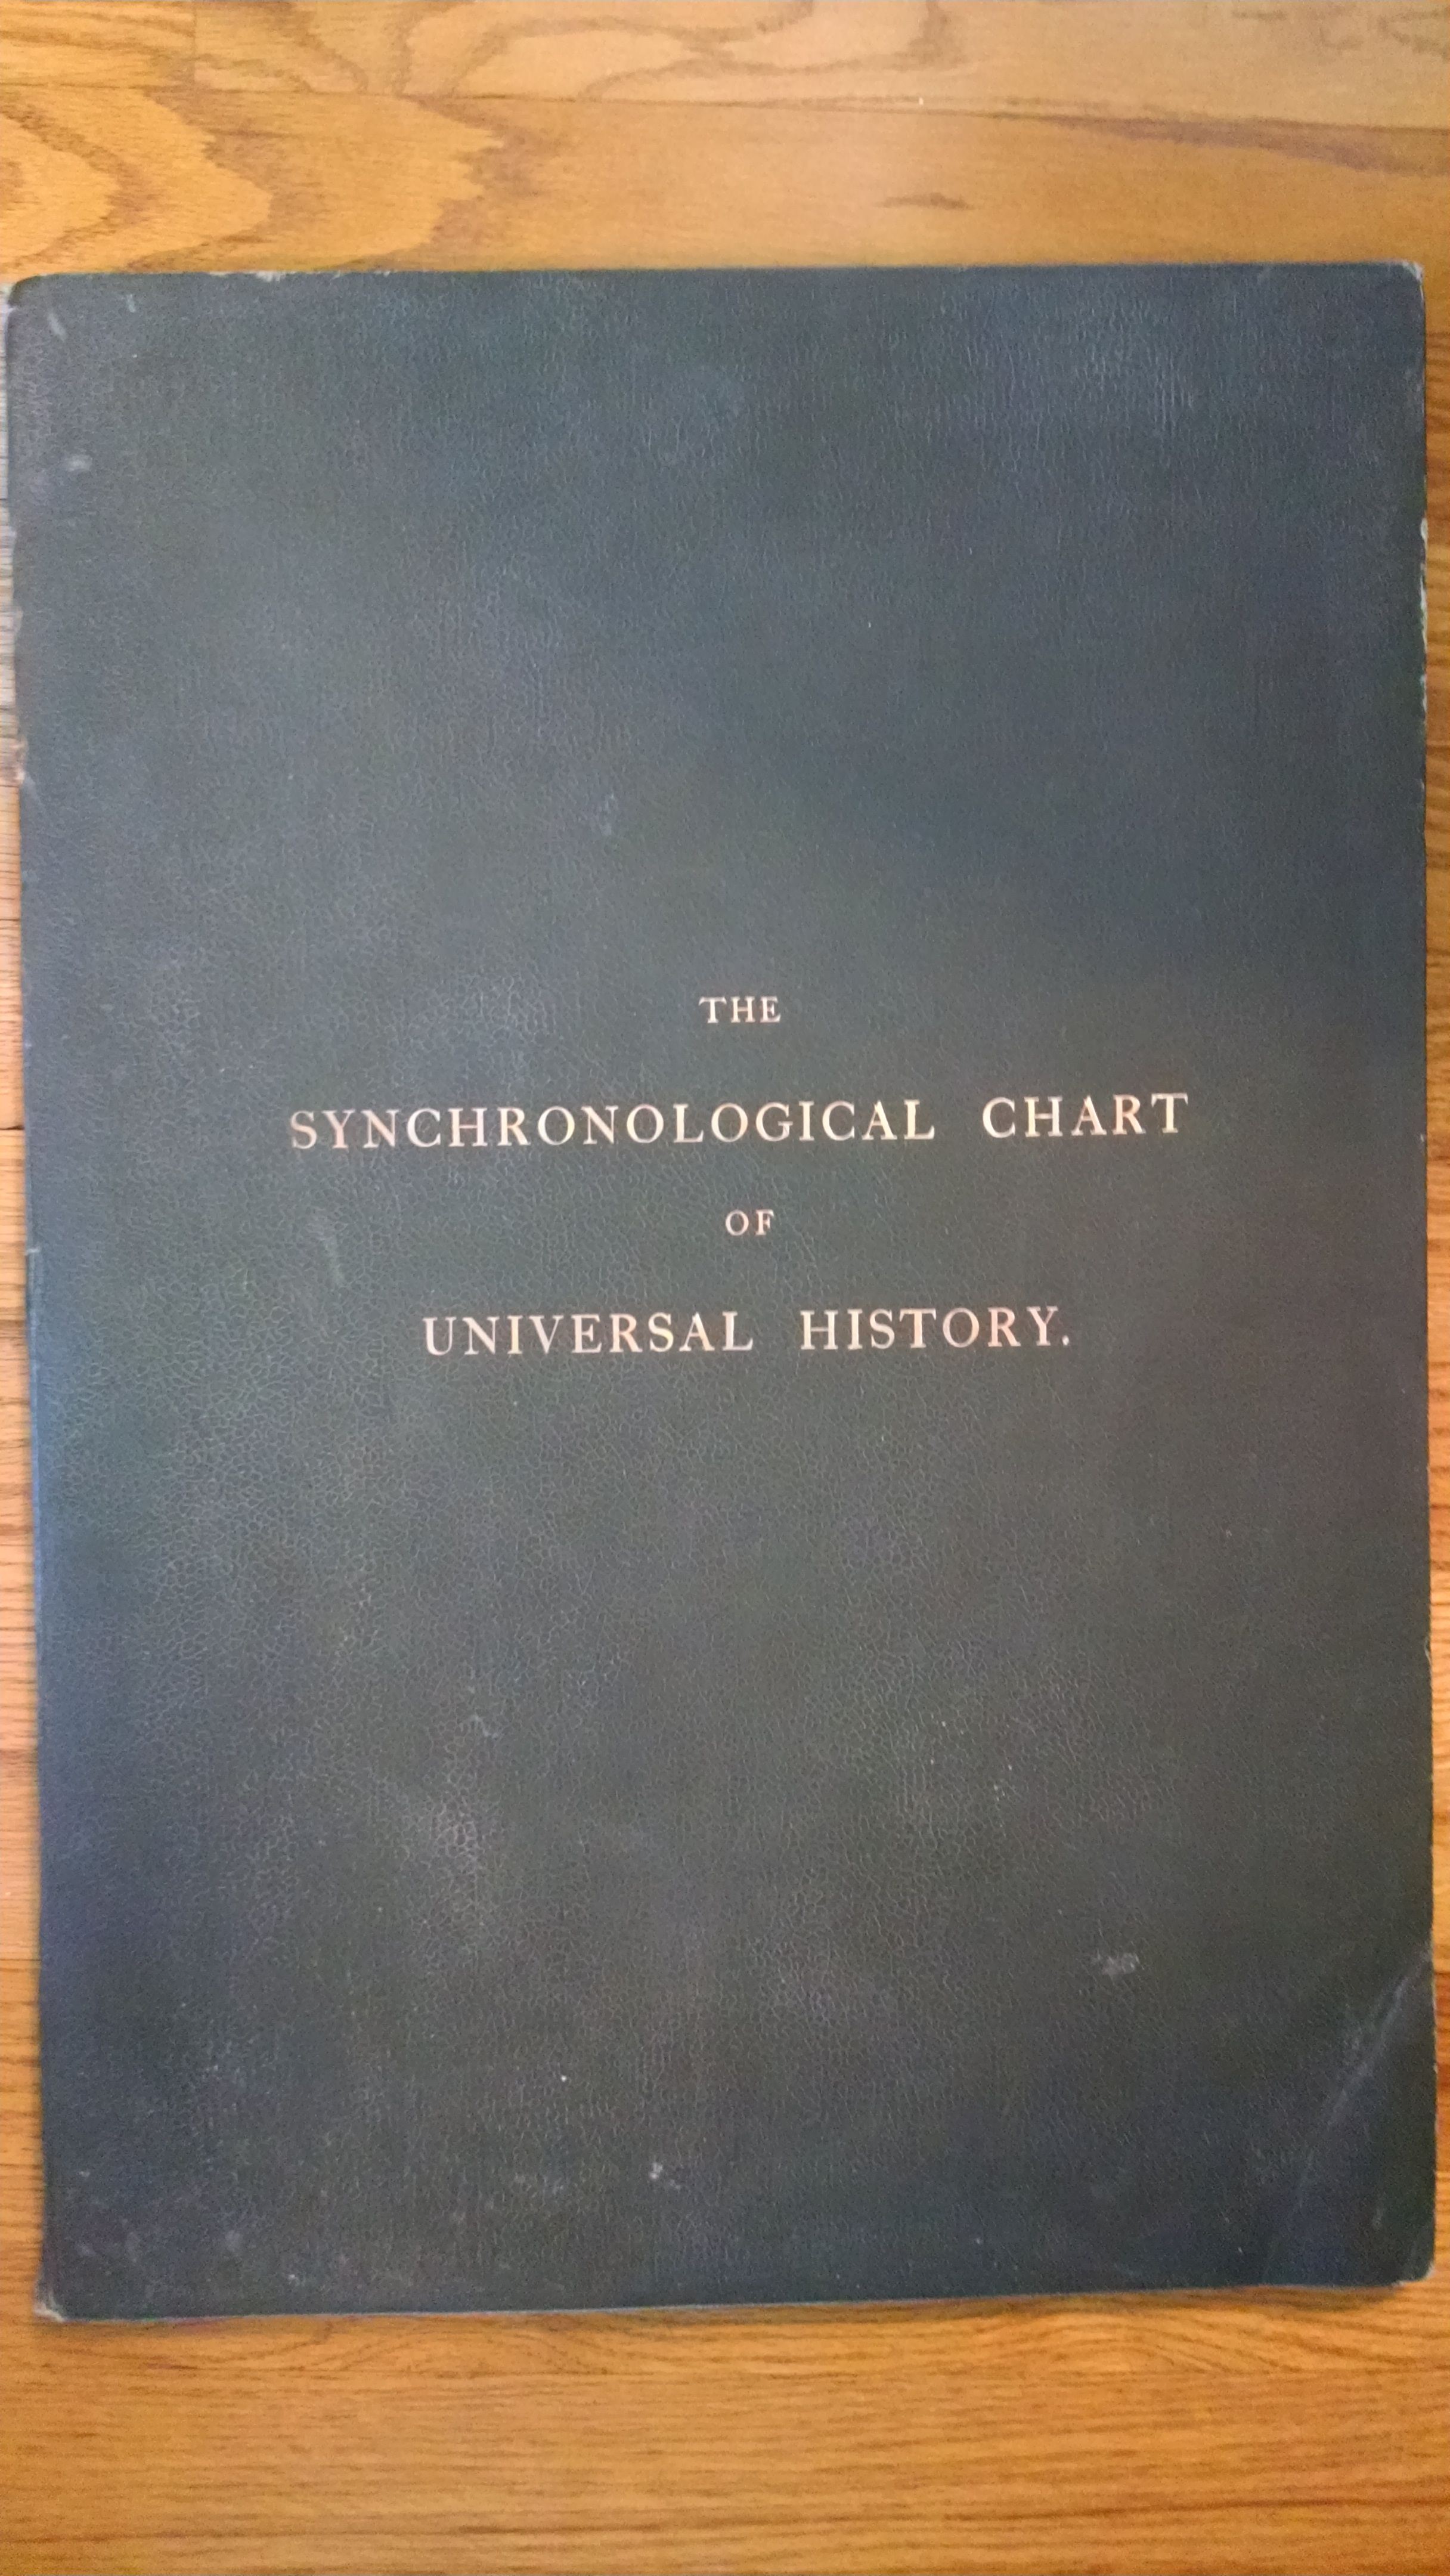 Image for DEACON'S SYNCHRONALOGICAL CHART OF UNIVERSAL HISTORY